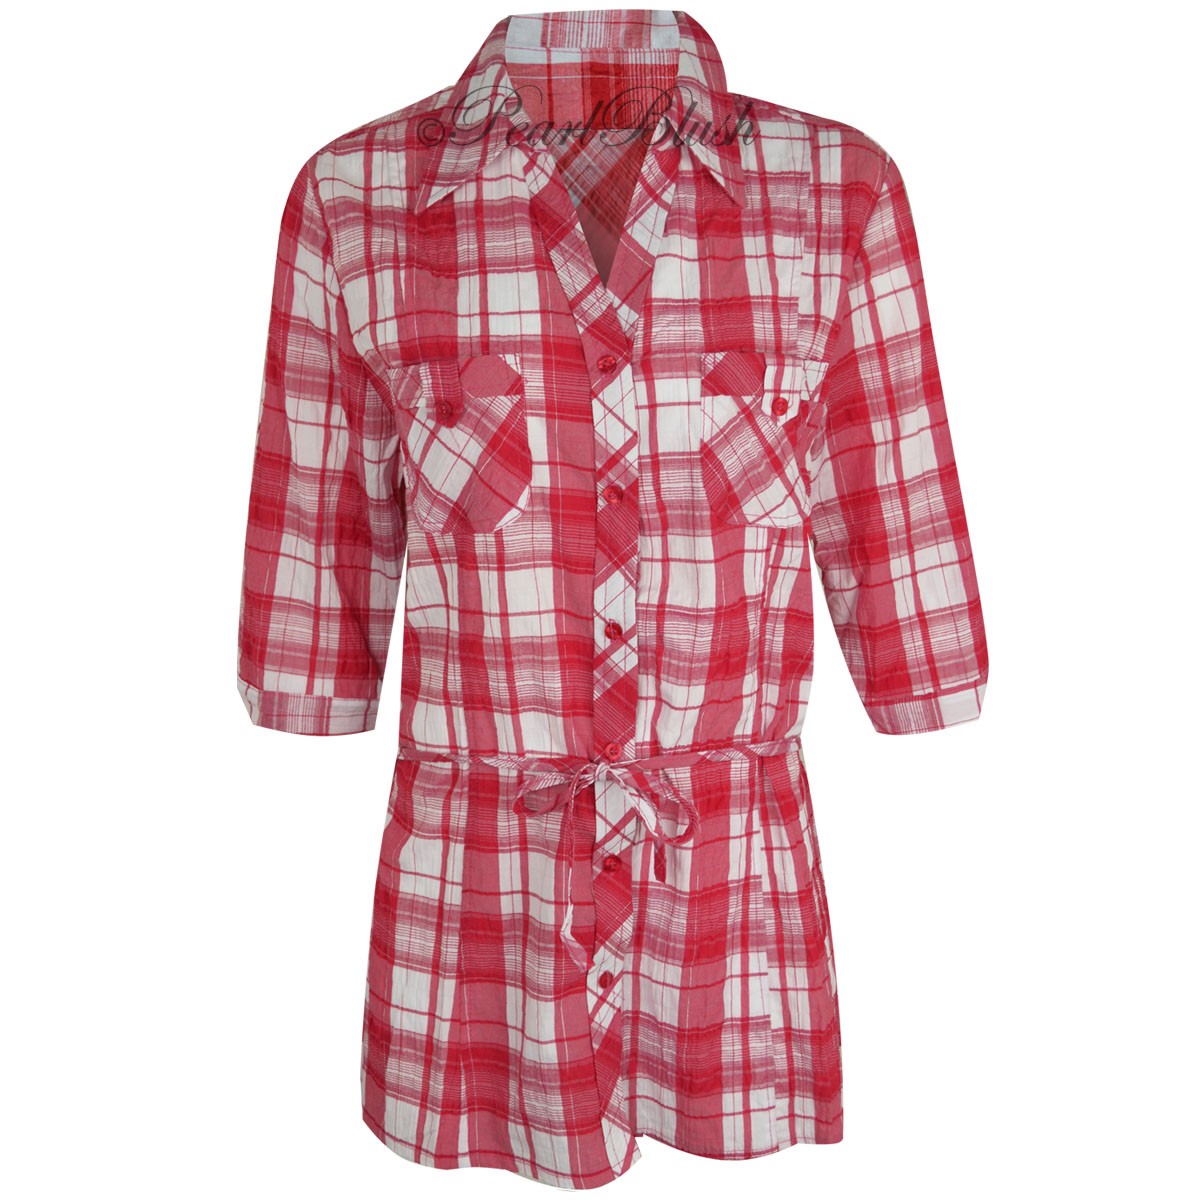 Womens Ladies Plaid Check Shirt 3 4 Sleeve Flannel Button